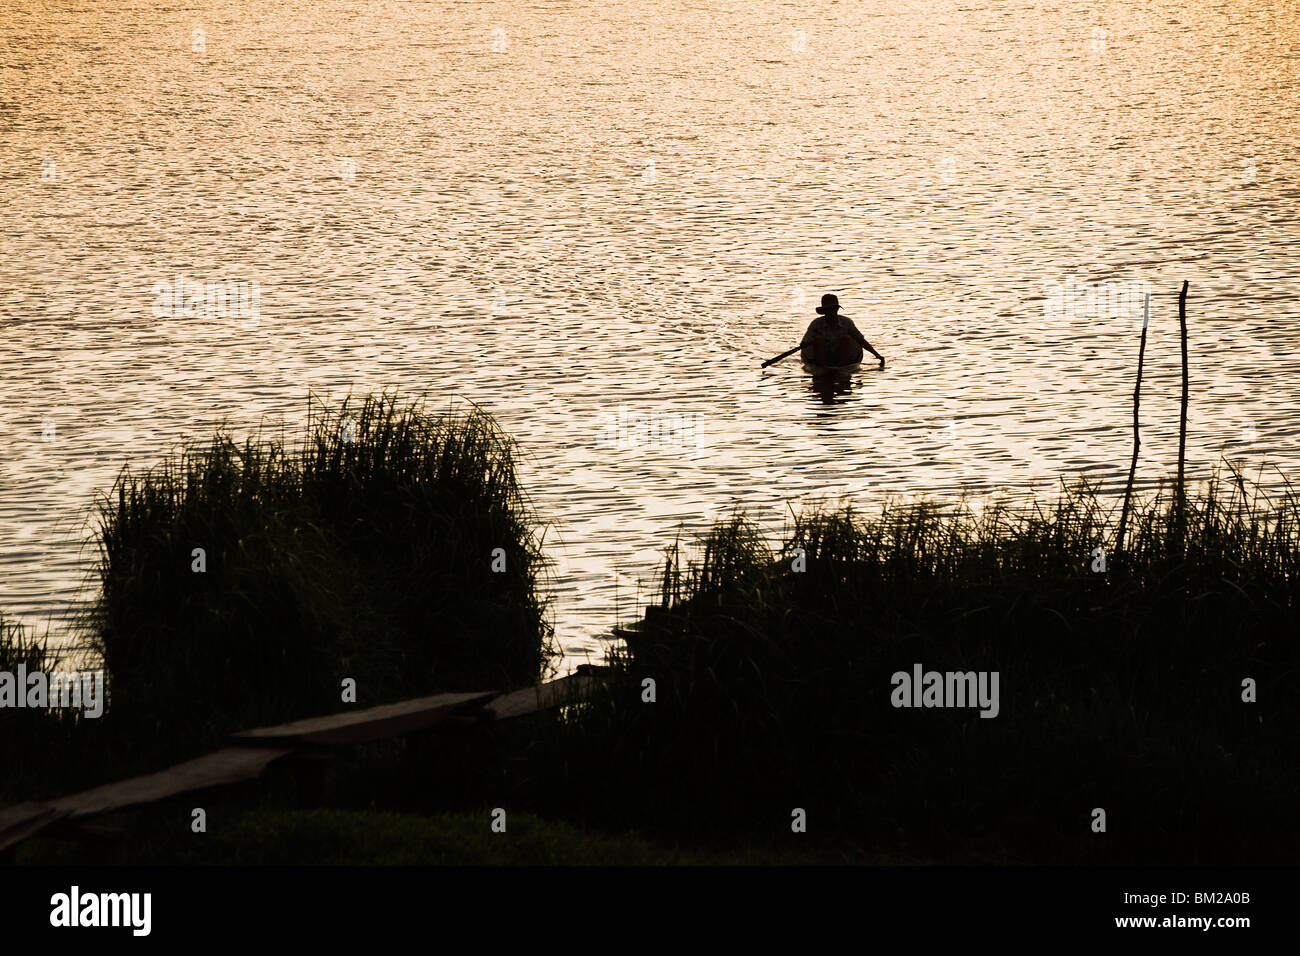 Man paddling small boat on Crocodile Lake at sunset in Cat Tien National Park. - Stock Image